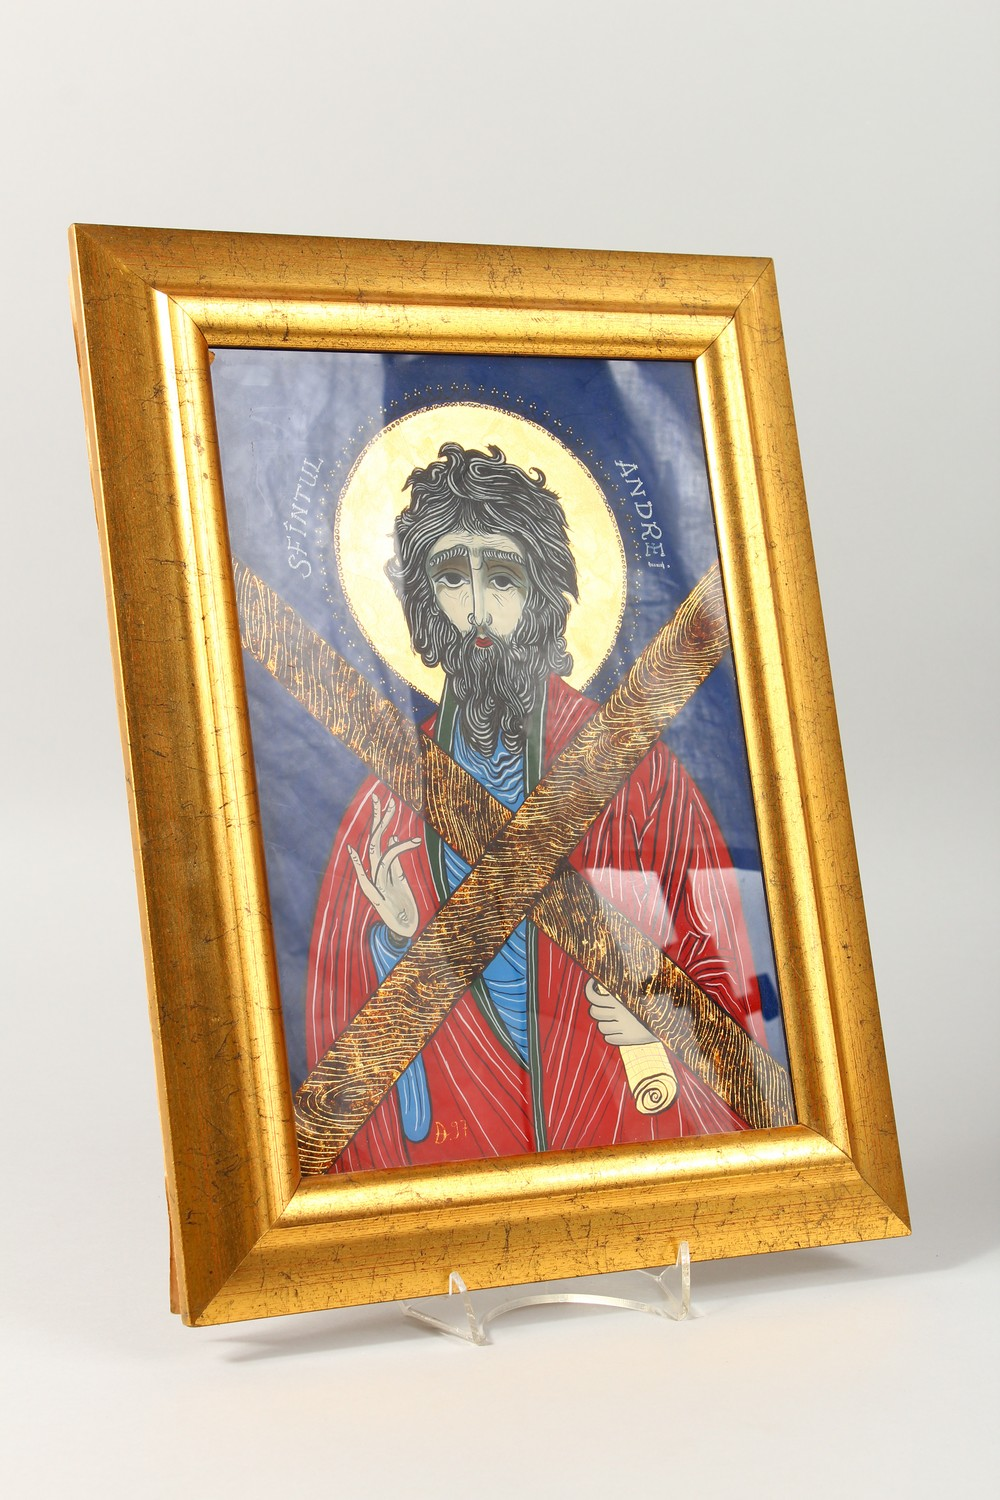 Lot 1732 - SAINT ANDREI. D97, behind glass. 11ins x 8ins.